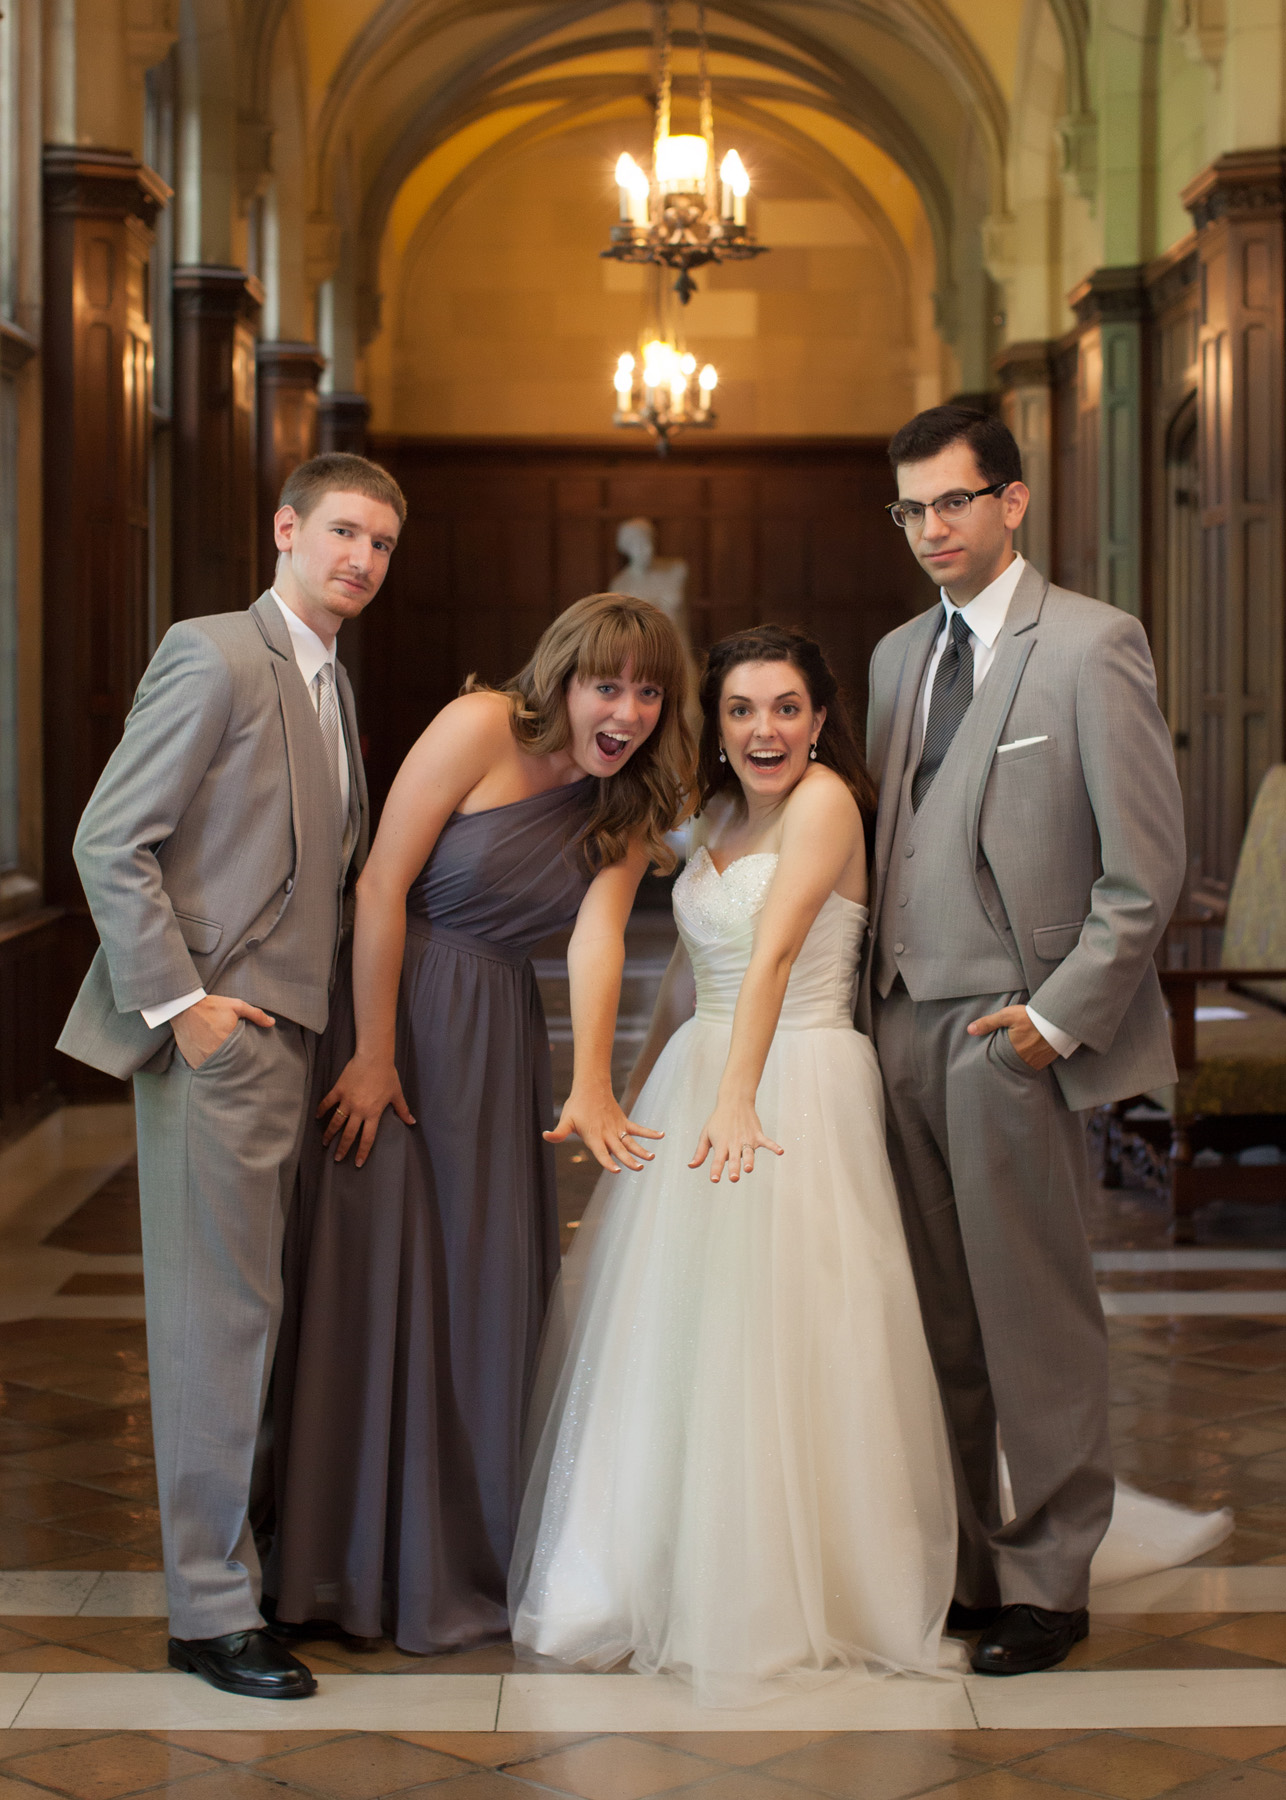 UofM_weddings_hull_melanie_reyes_051